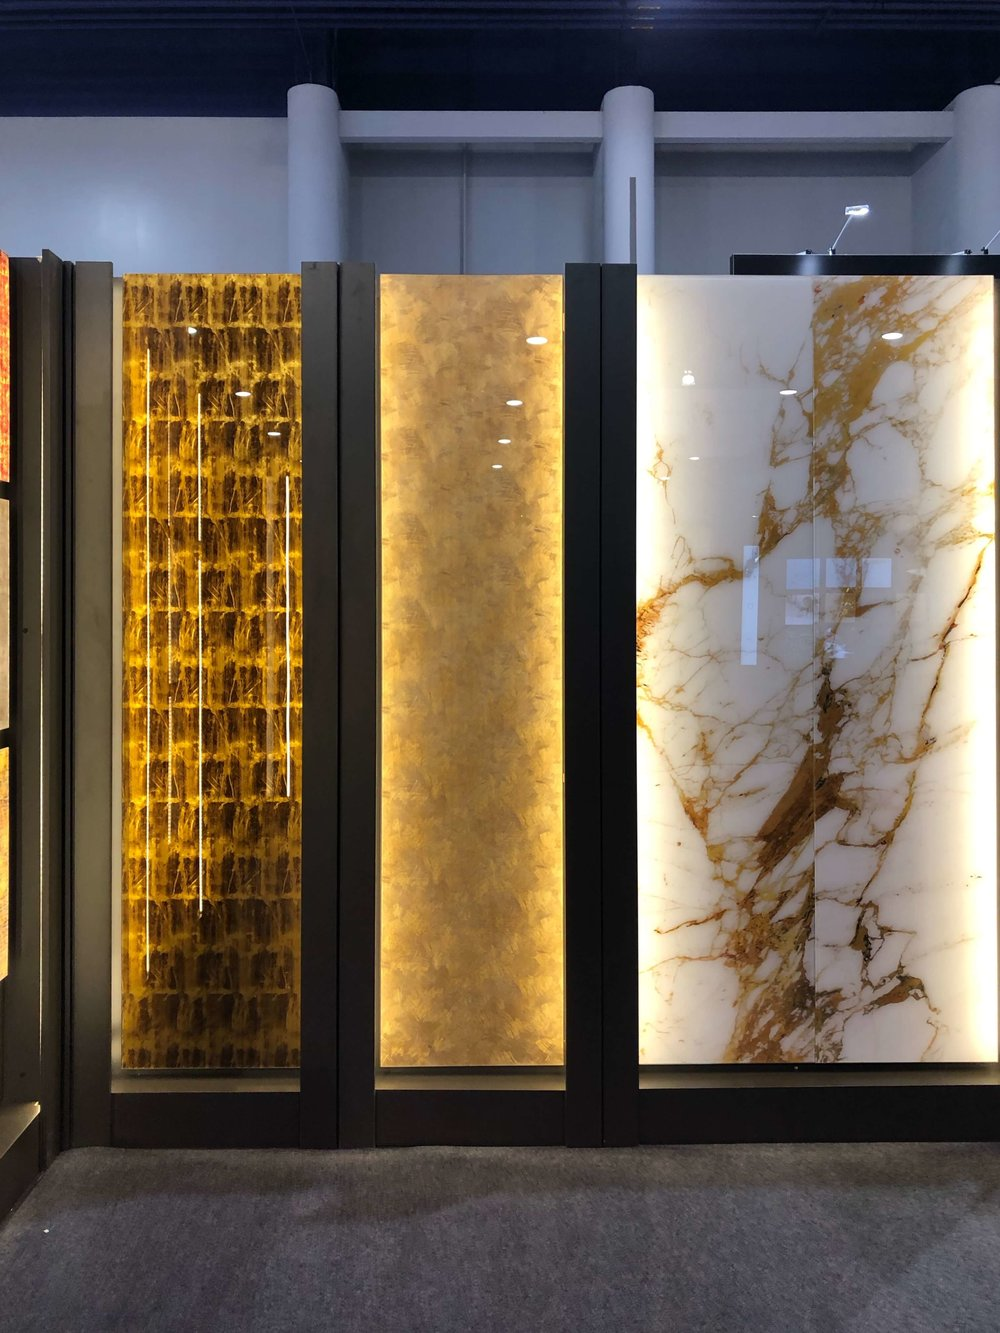 Back painted glass cabinet door options | KBIS 2019 Surfaces Trends